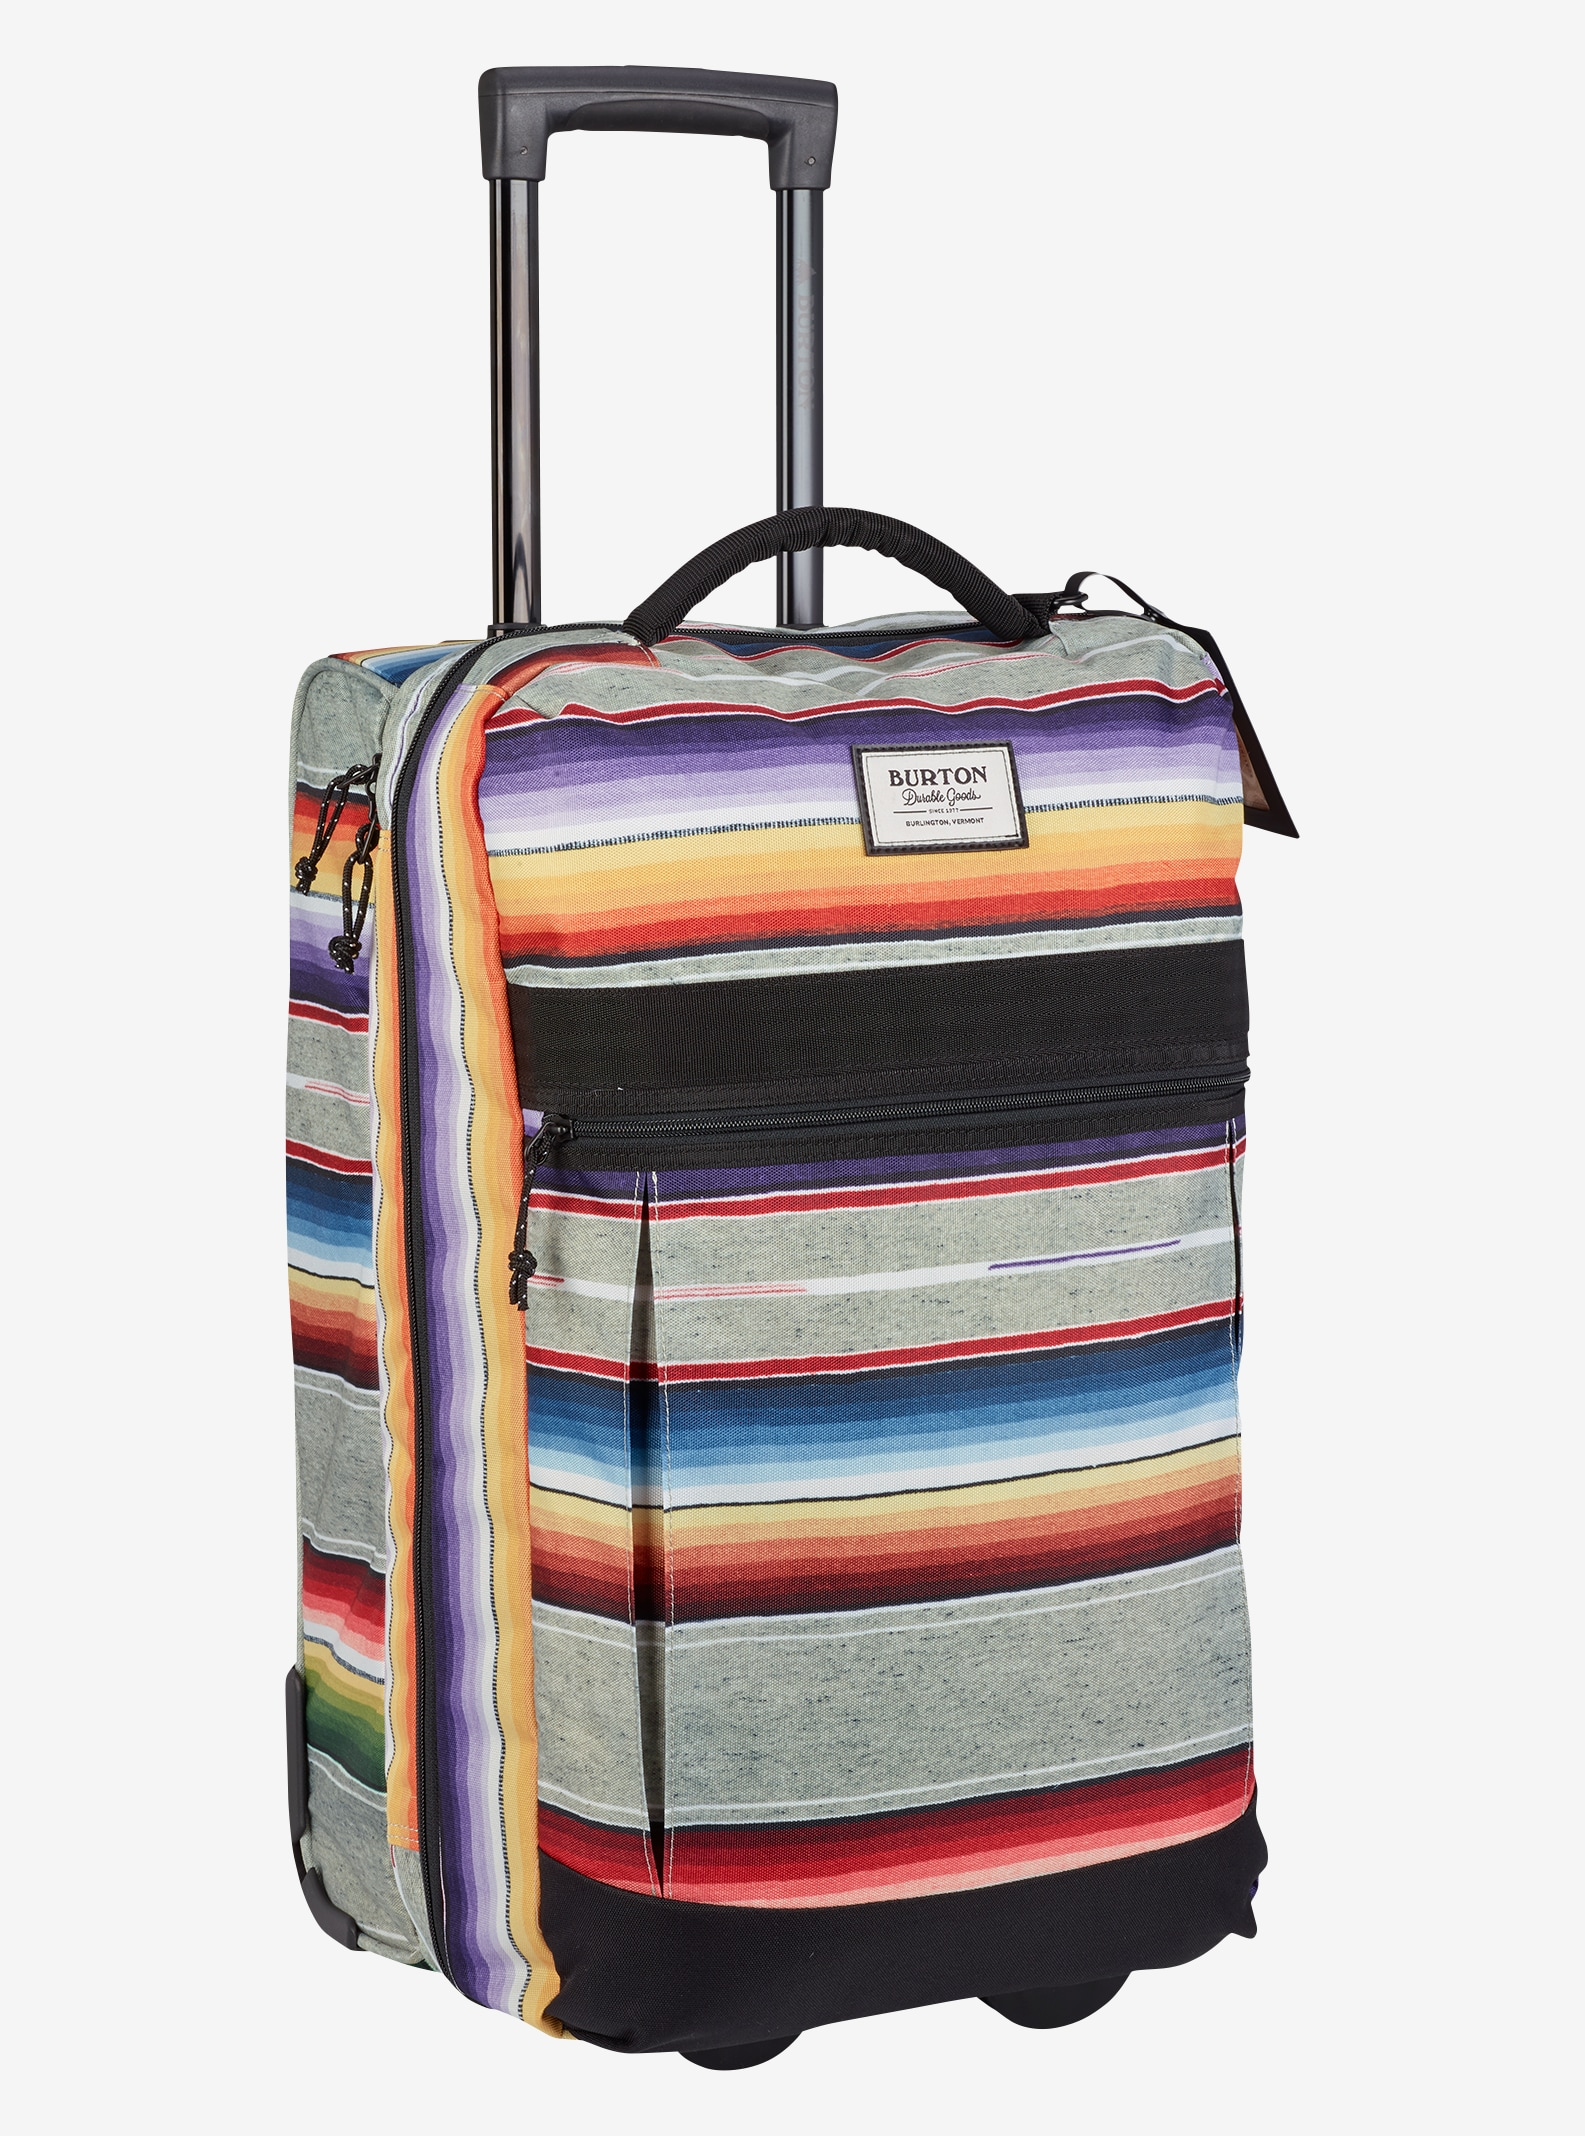 Burton Charter Roller Travel Bag shown in Bright Sinola Stripe Print